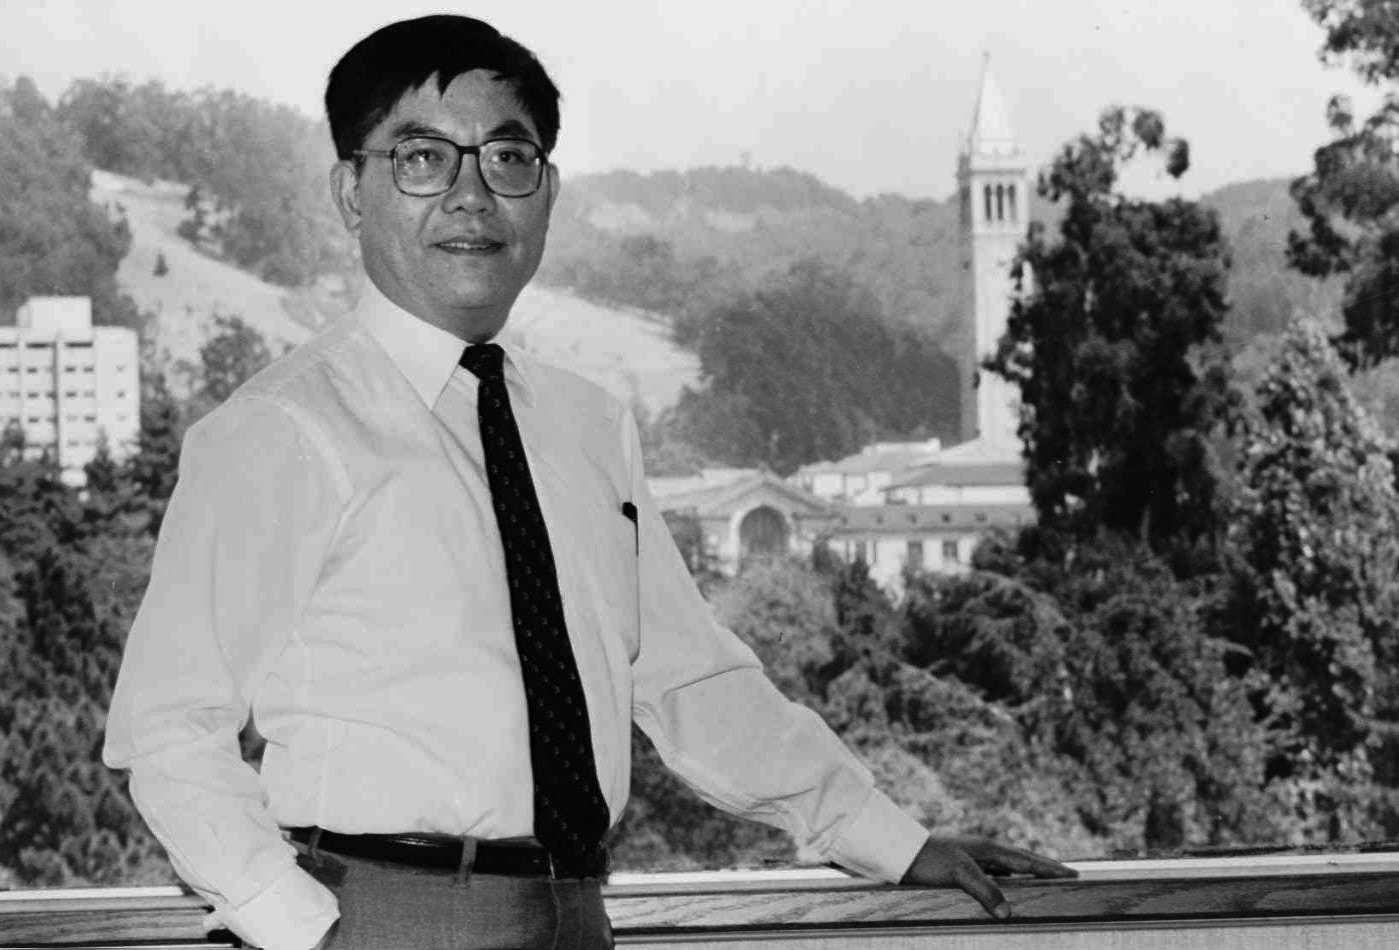 FILE--Chang-Lin Tien, chancellor of the University of California at Berkeley, shown in this 1990 file photo on the Berkeley, Calif., campus, is expected to announce his resignation Tuesday, July 9, 1996, the Sacramento Bee reported. Tien, 66, has been chancellor for the past six years. (AP Photo/Kristy MacDonald)